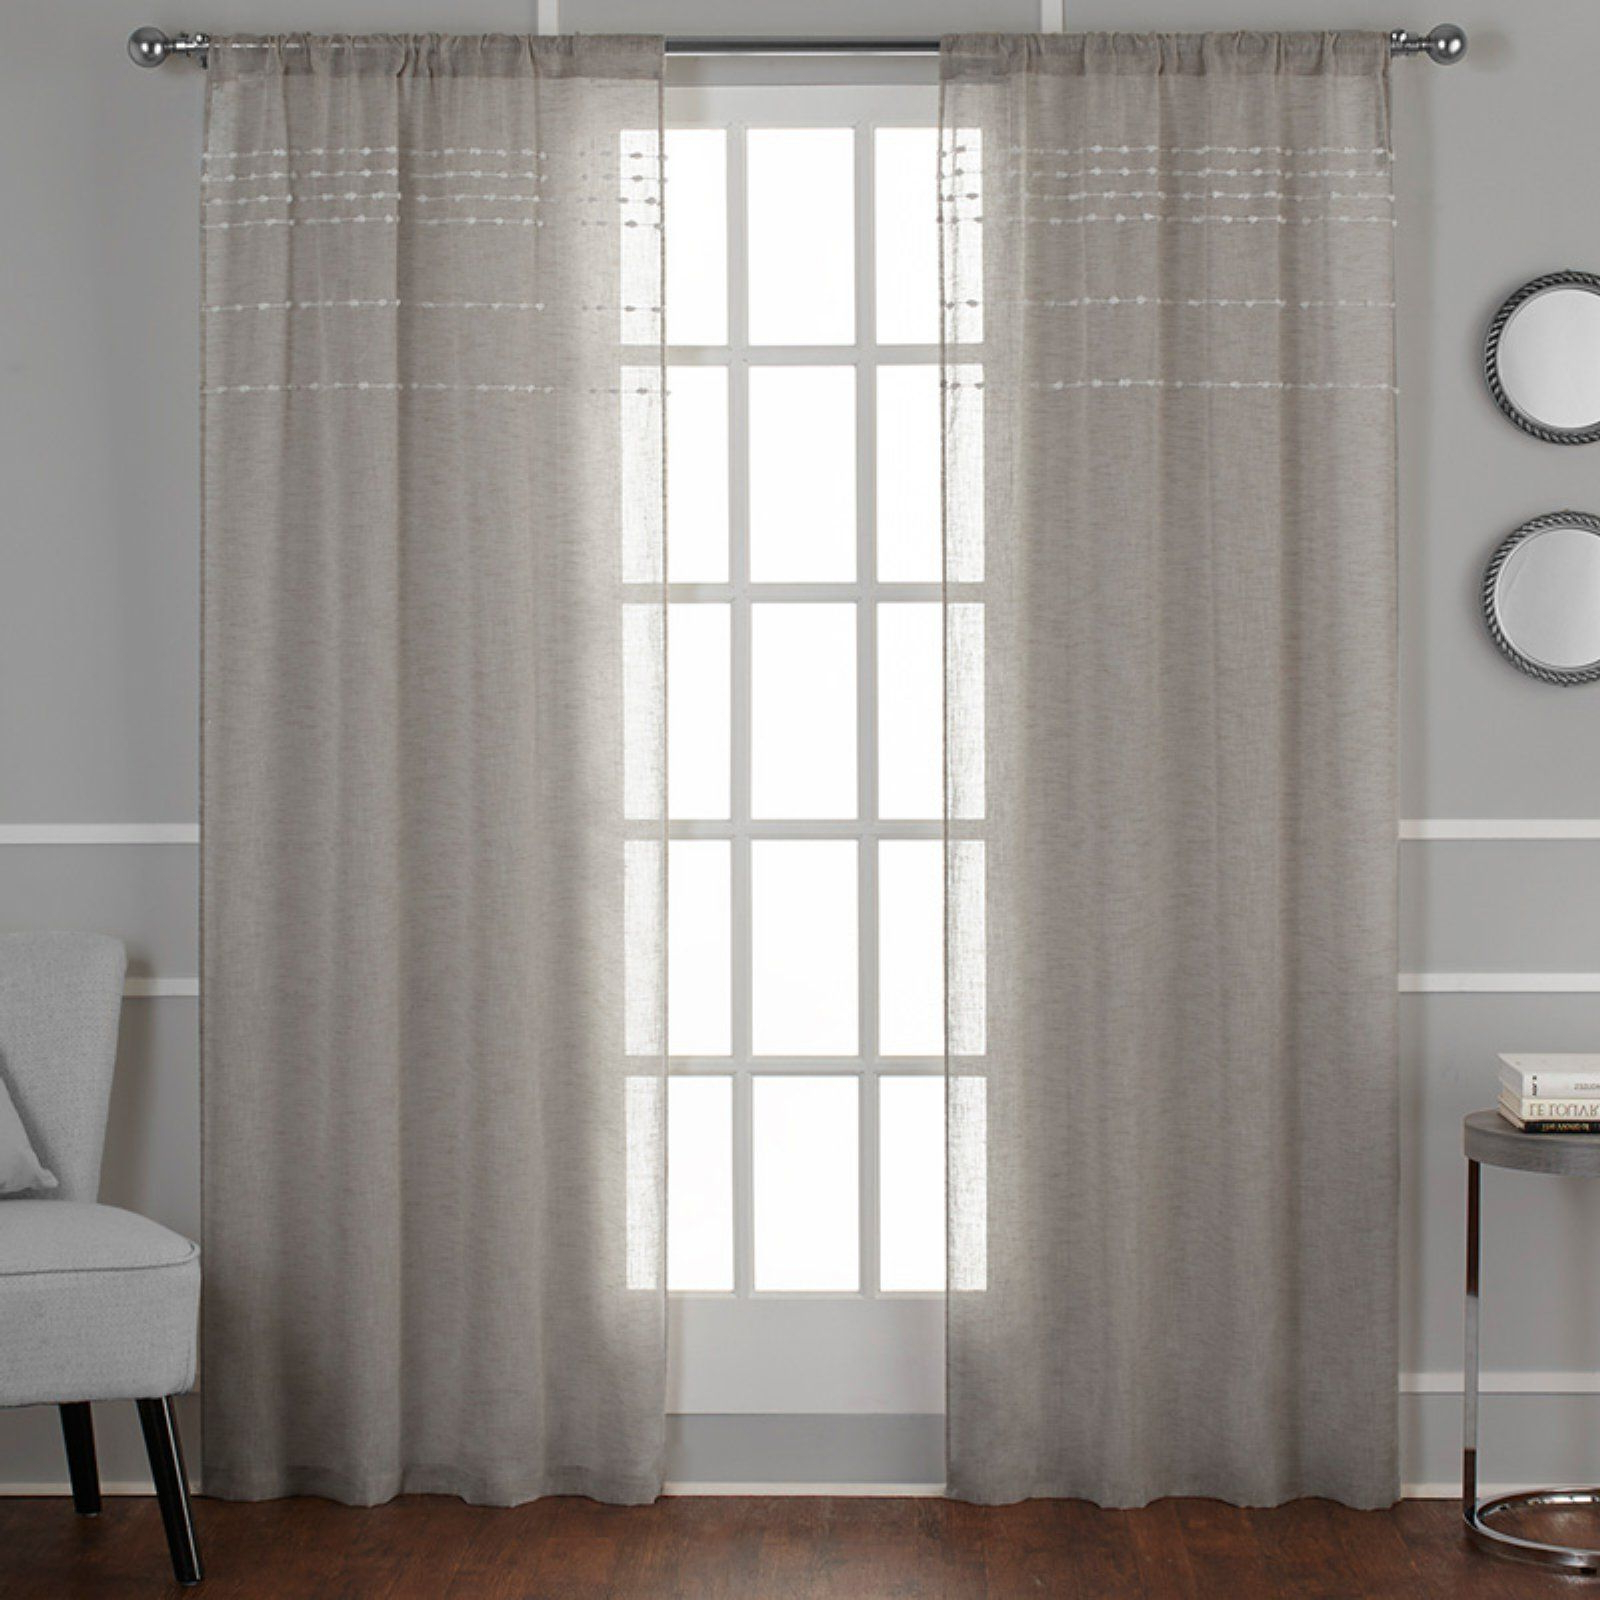 Belgian Sheer Window Curtain Panel Pairs With Rod Pocket Pertaining To Favorite Exclusive Home Davos Puff Embellished Belgian Sheer Window (View 3 of 20)